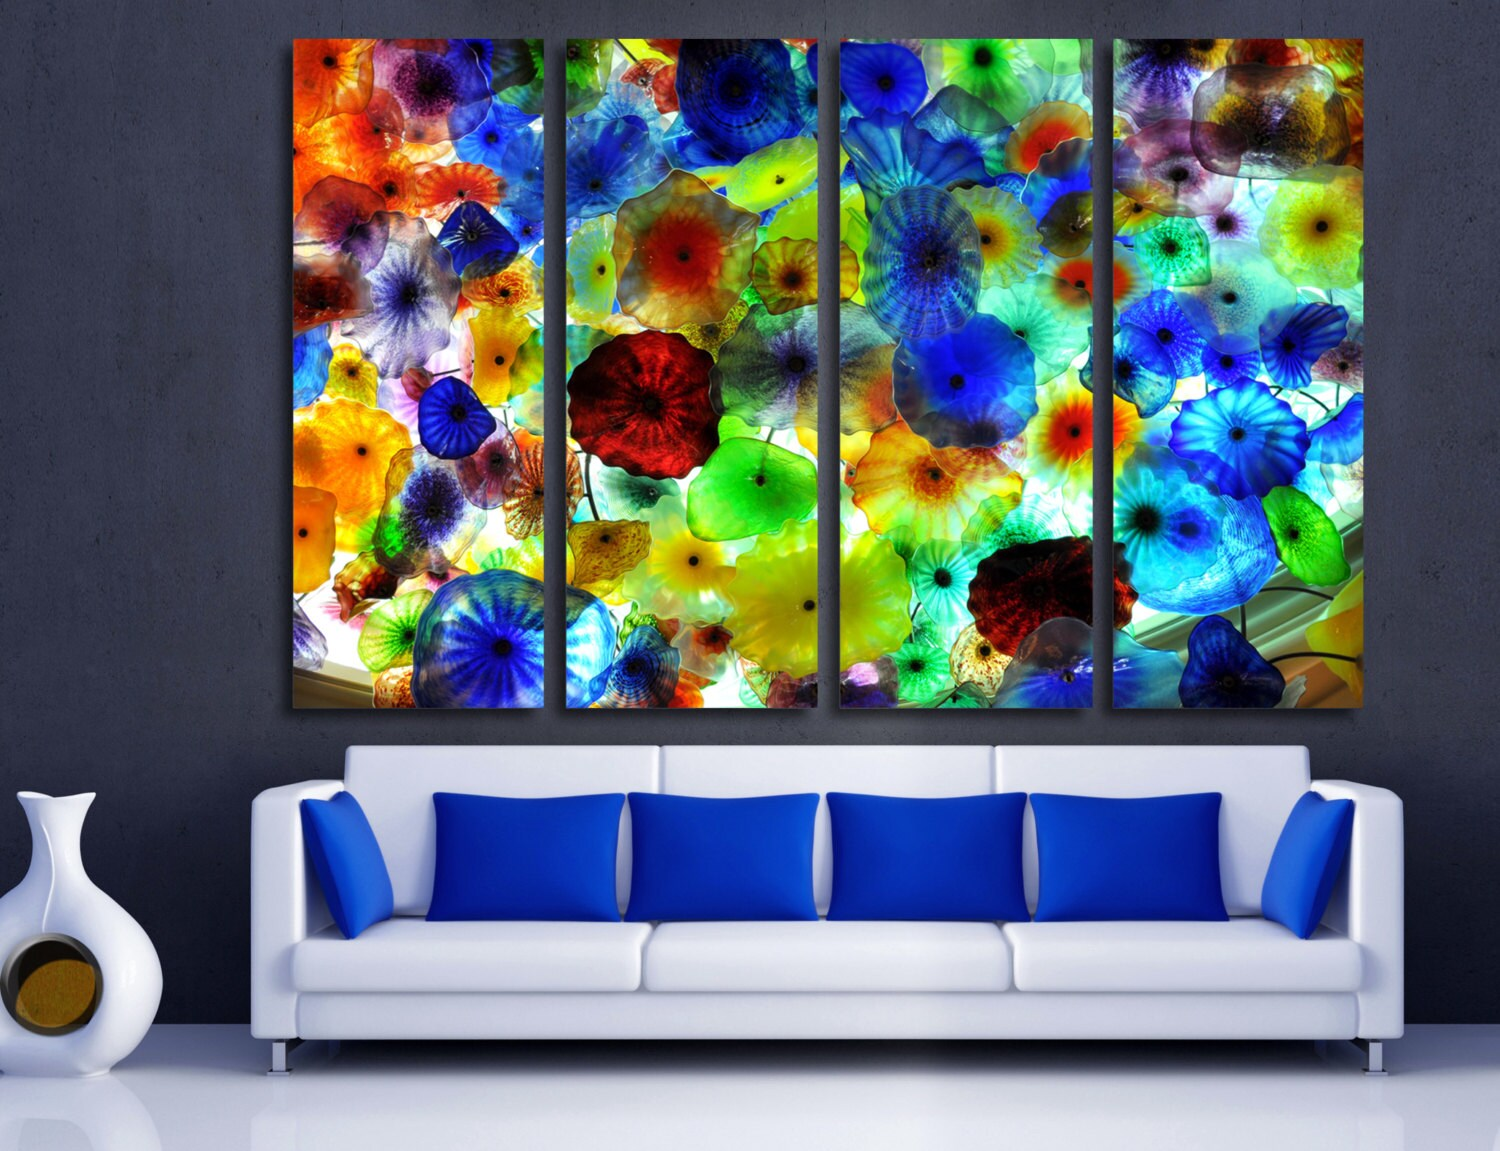 Color art office interiors -  Zoom